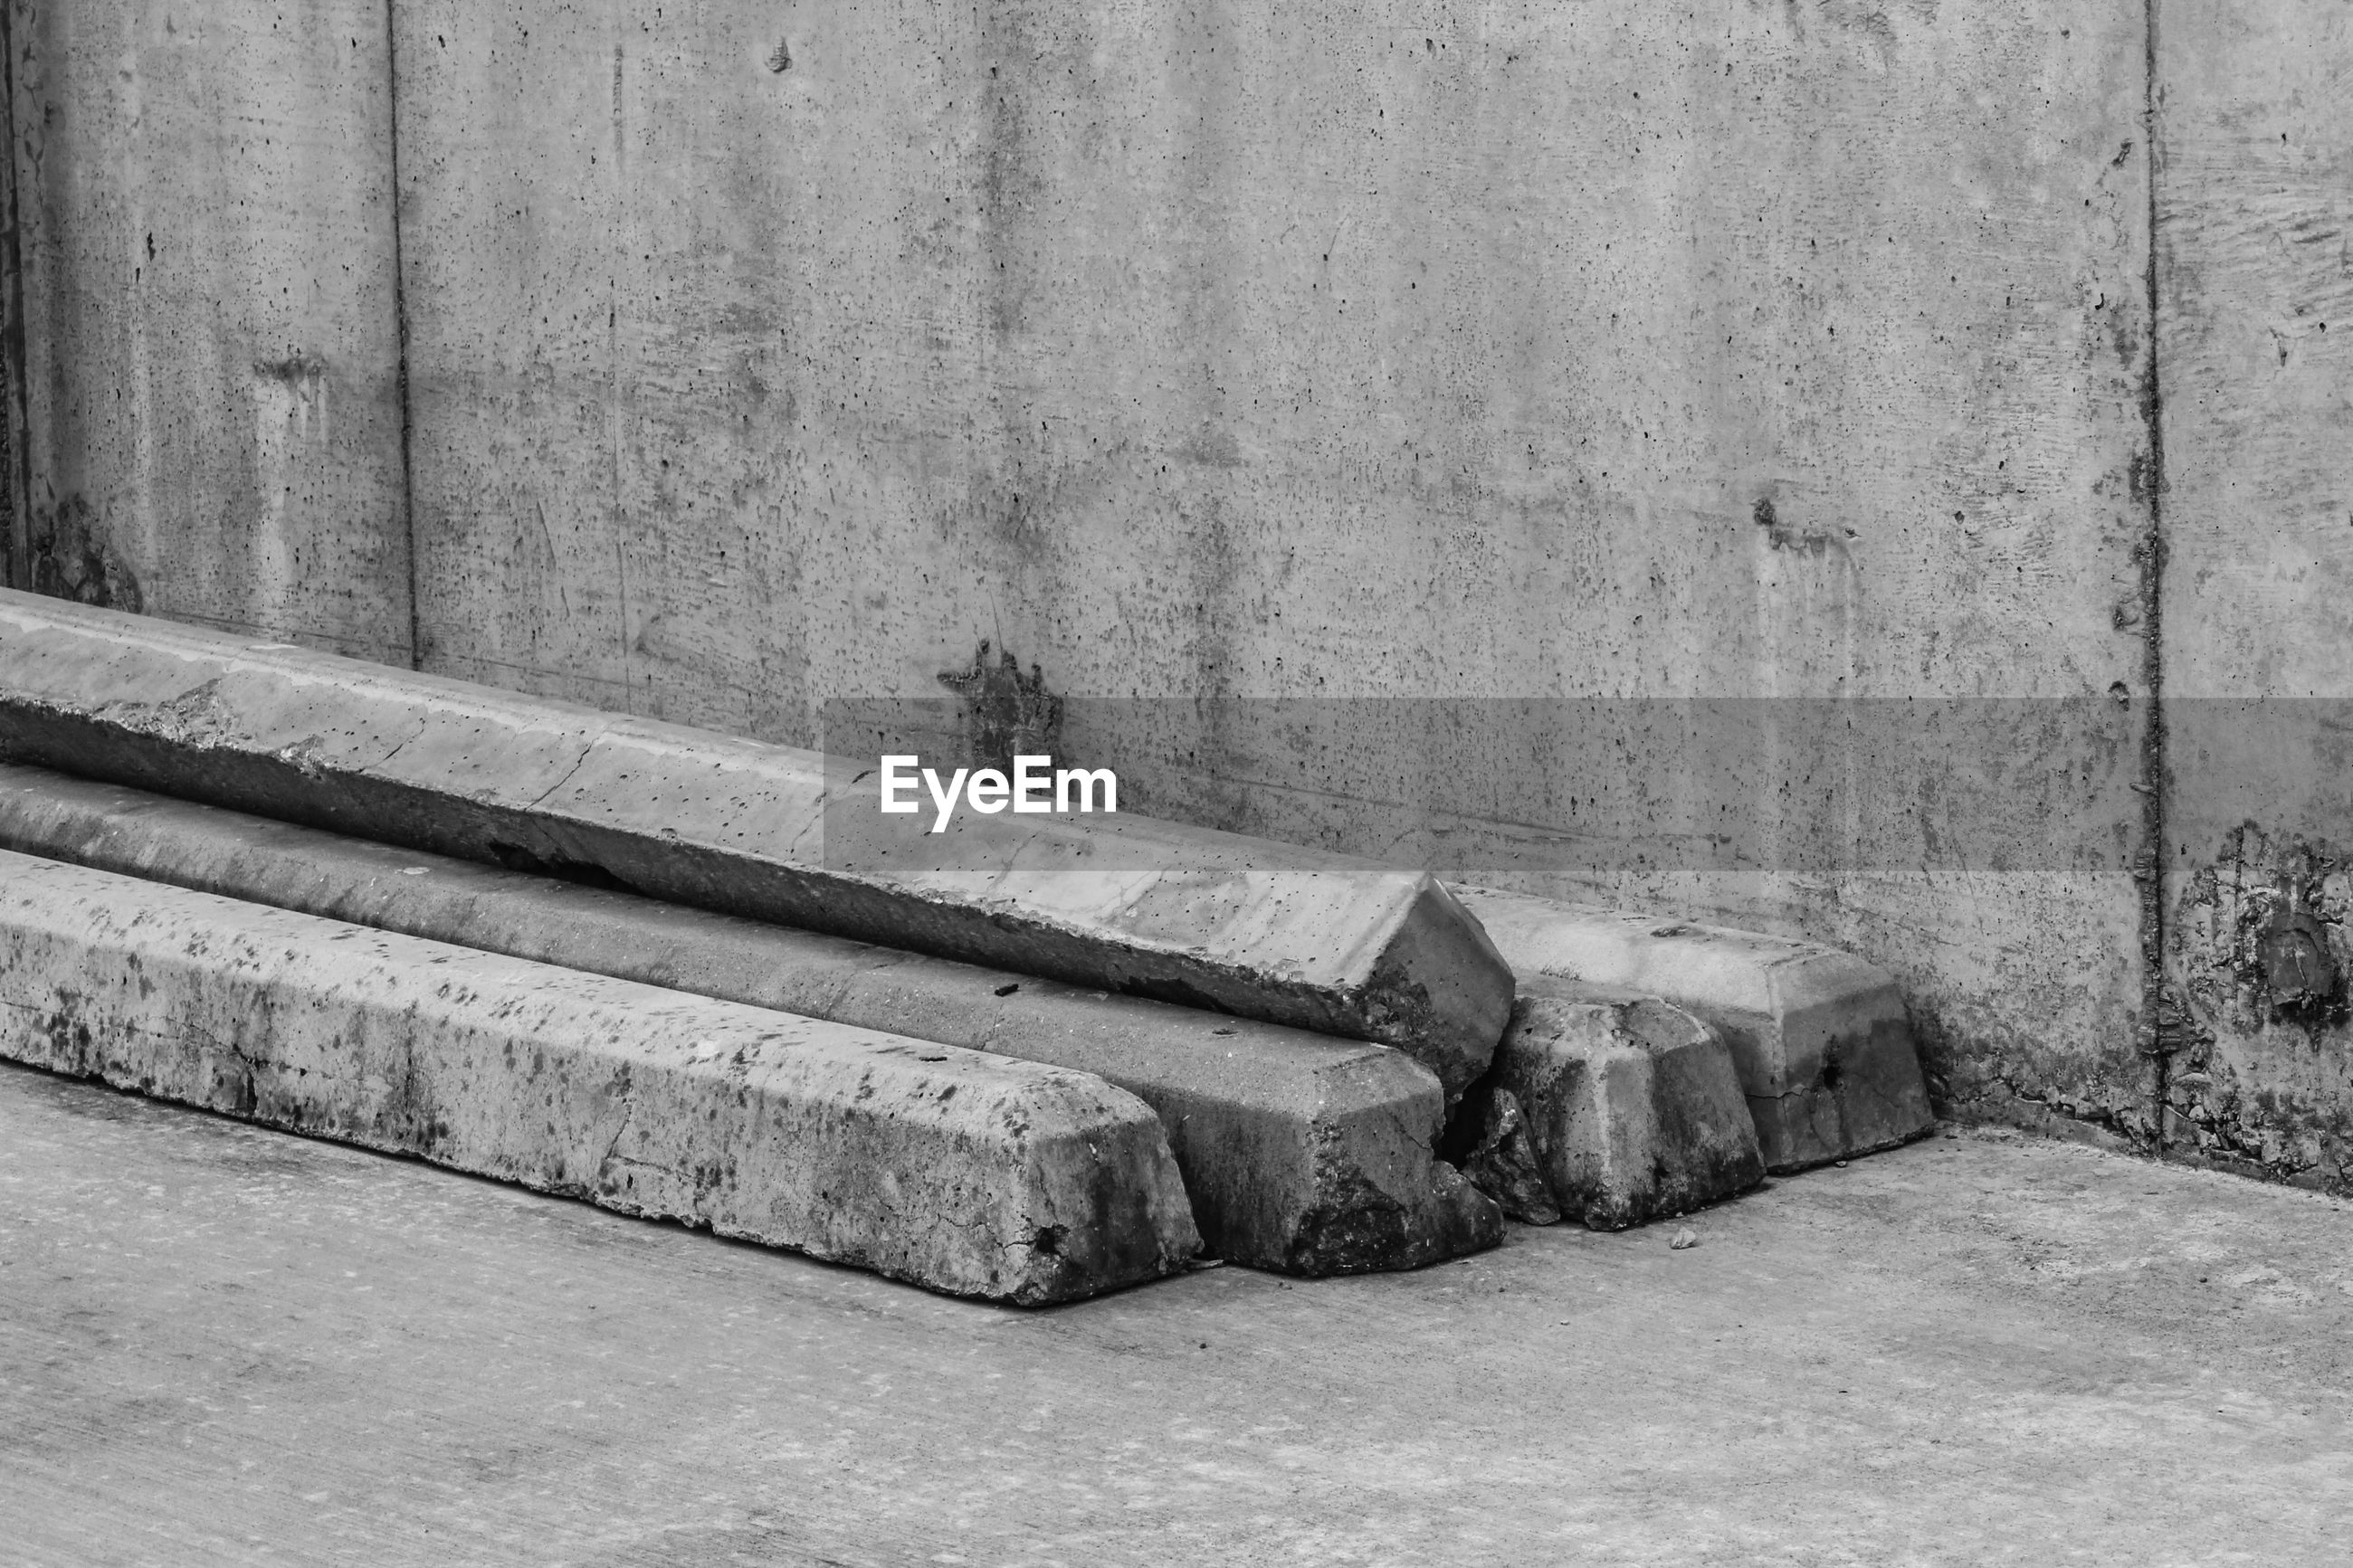 High angle view of abandoned concrete railroad ties against wall